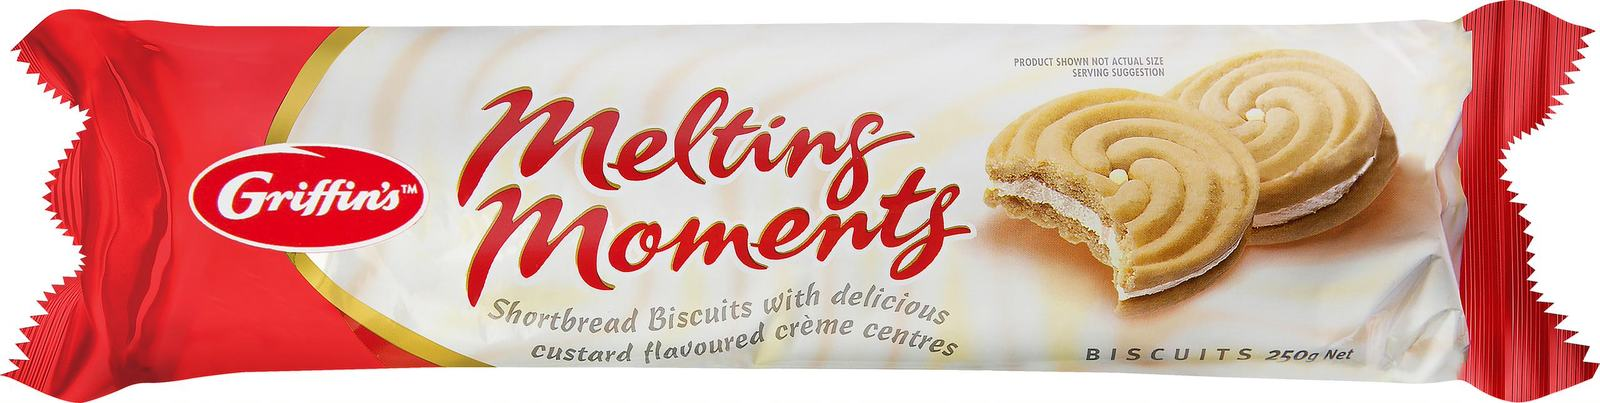 Griffin's Melting Moments (250g) image